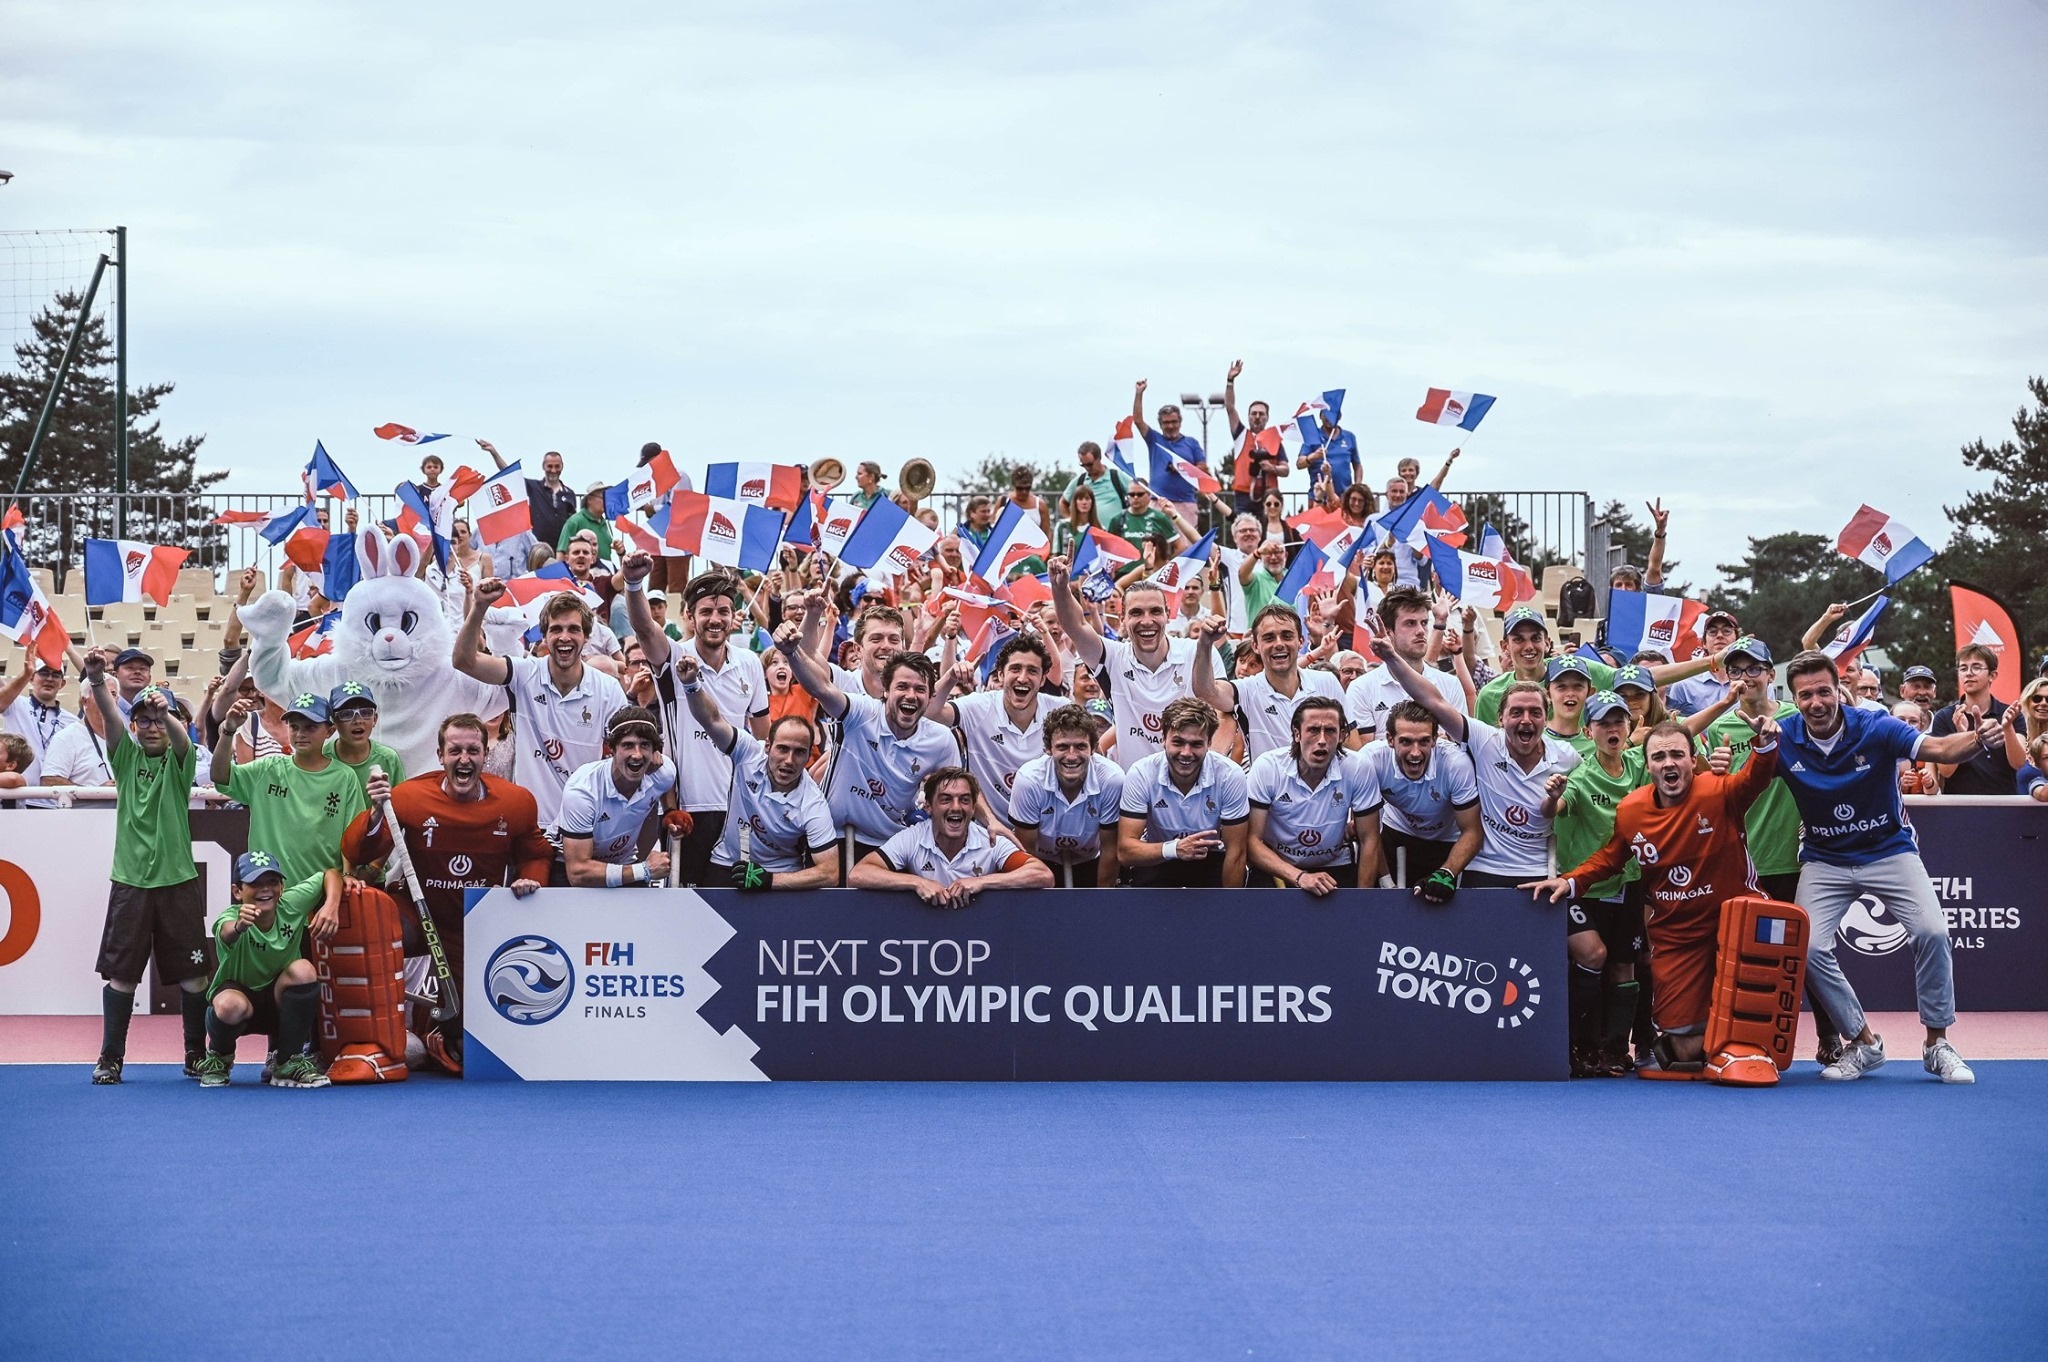 images/Carrousel/FIH_SERIES_FINALS_2019.jpg